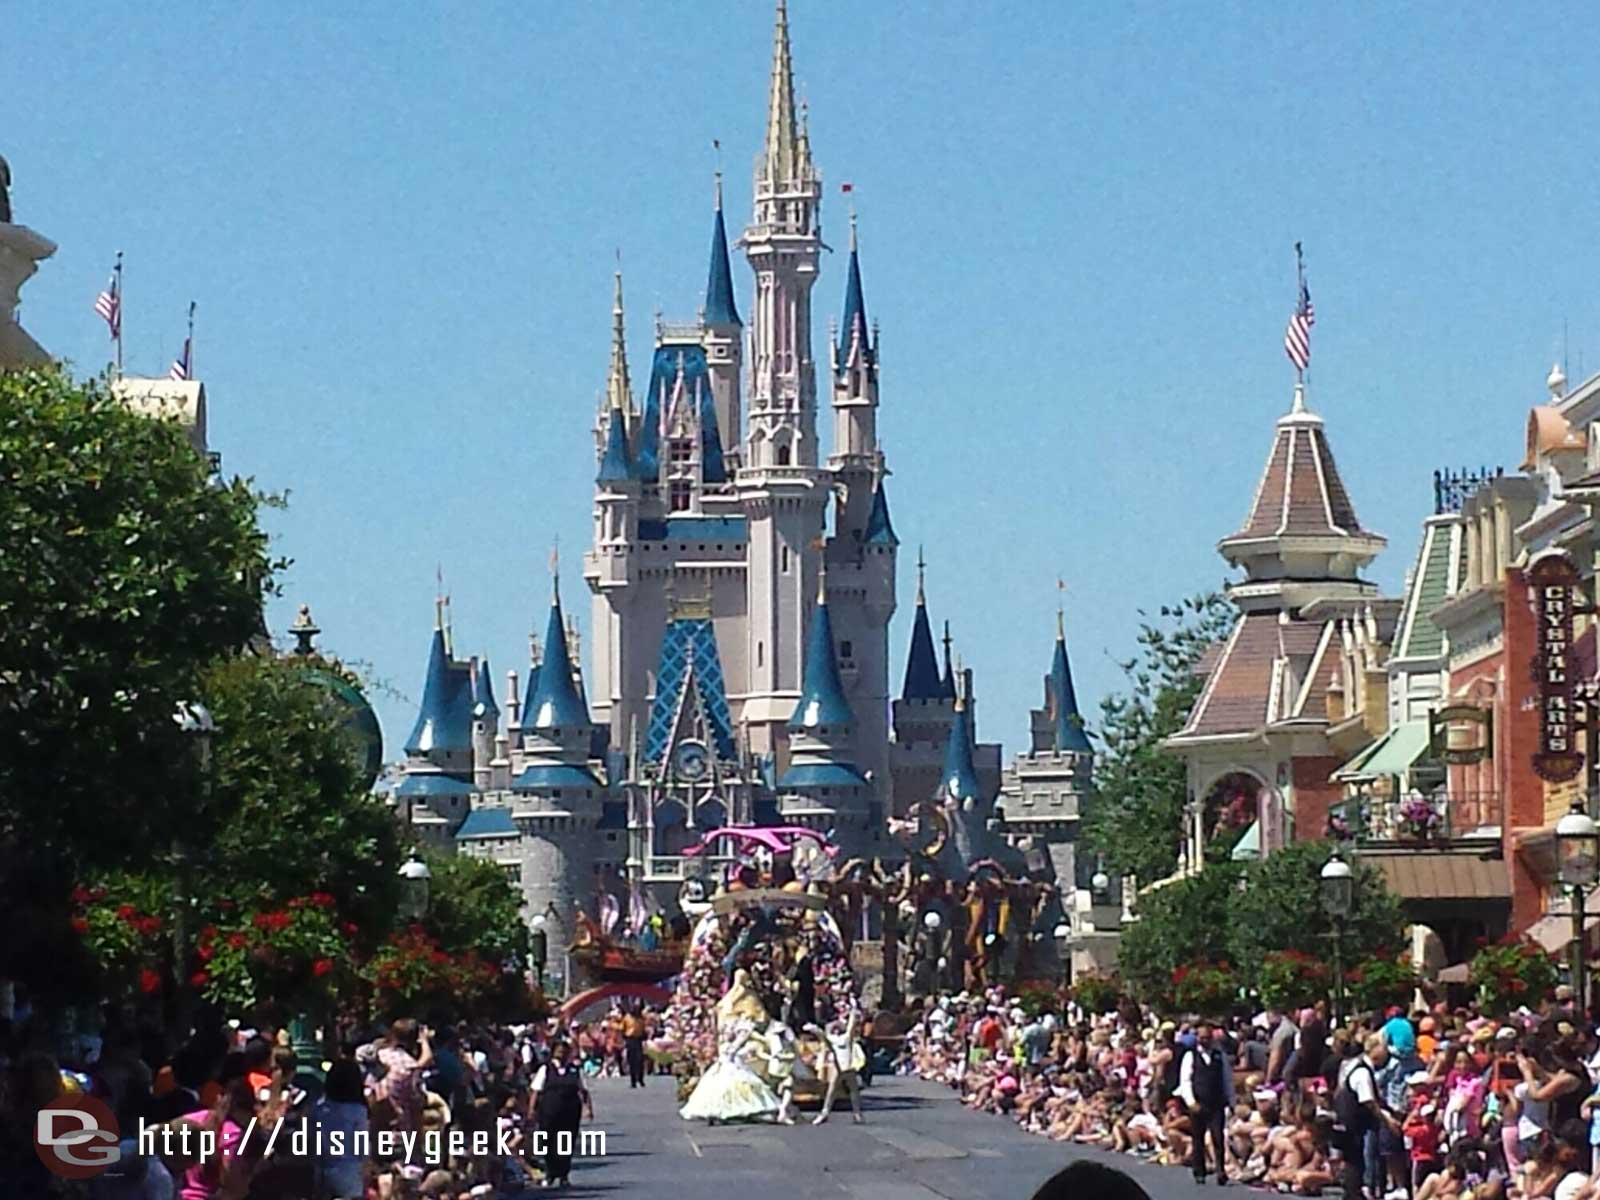 The Festival of Fantasy parade arriving on Main Street #WDW